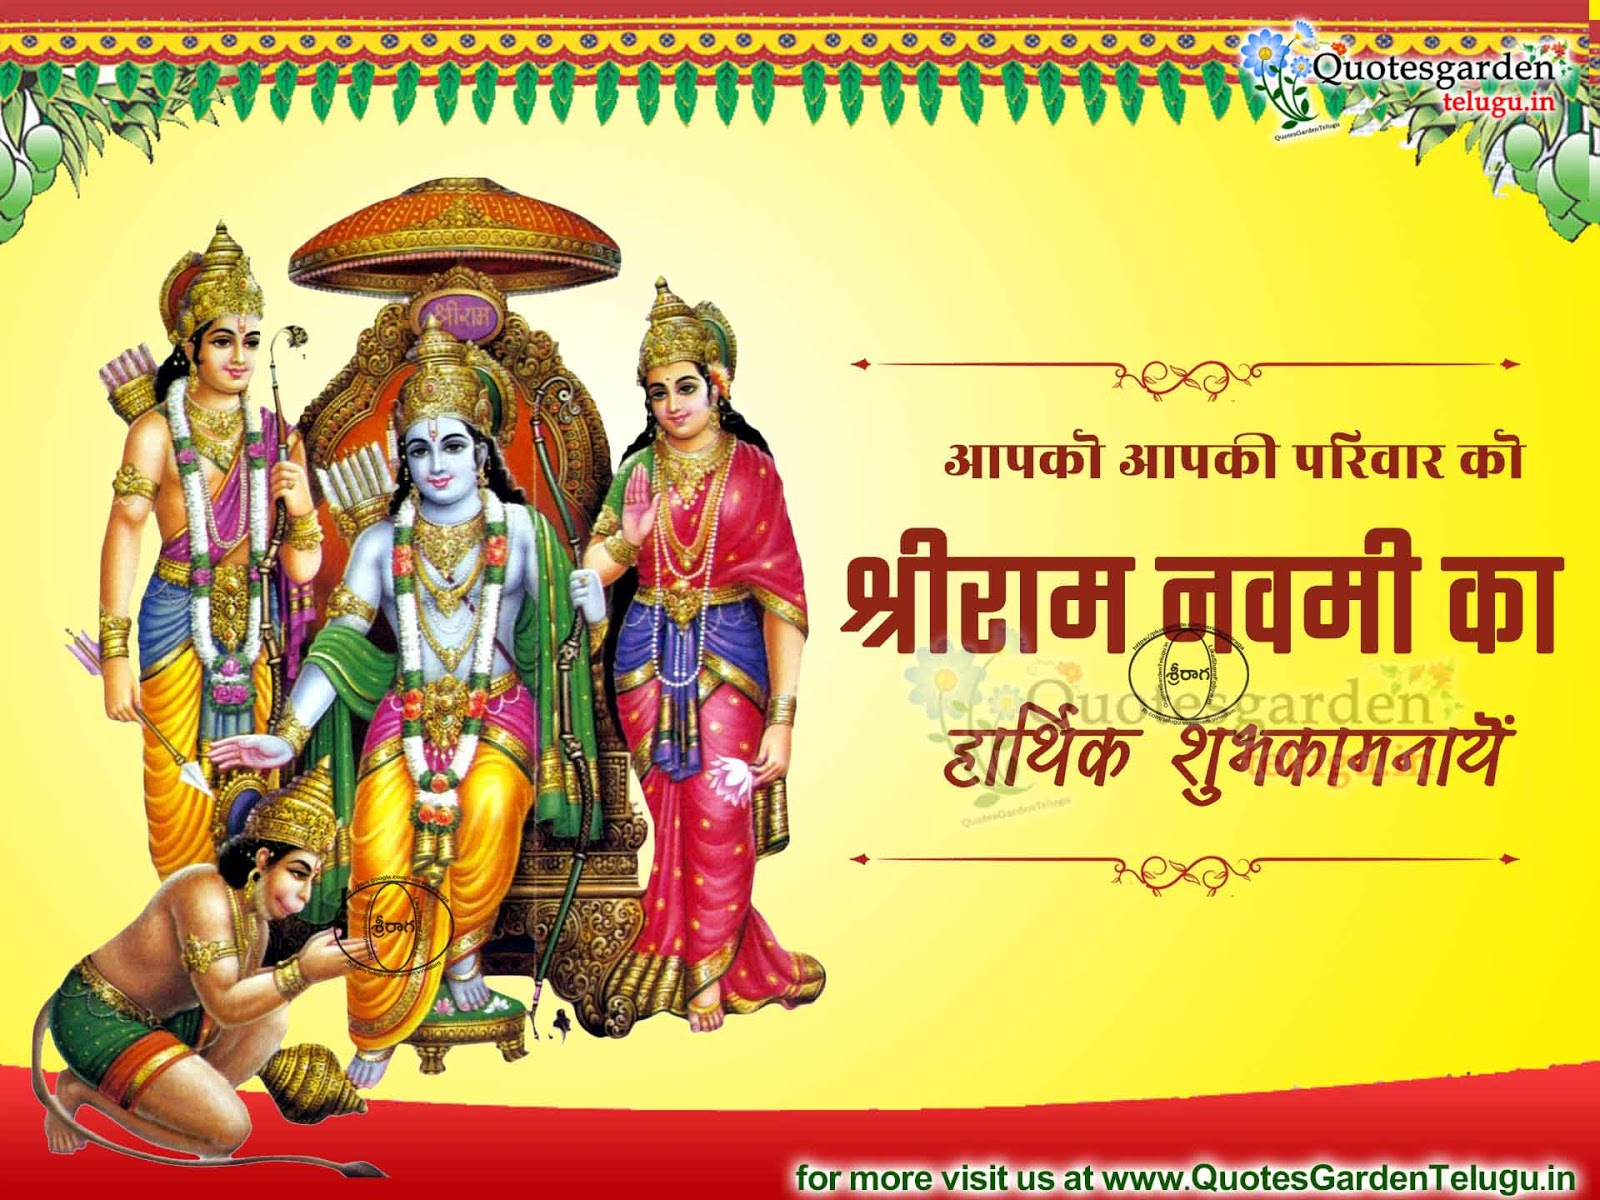 essay on sri rama navami Rama navami, in honour of the birth of lord rama, is another popularly celebrated festival all over the country this festive occasion is celebrated on the ninth day.